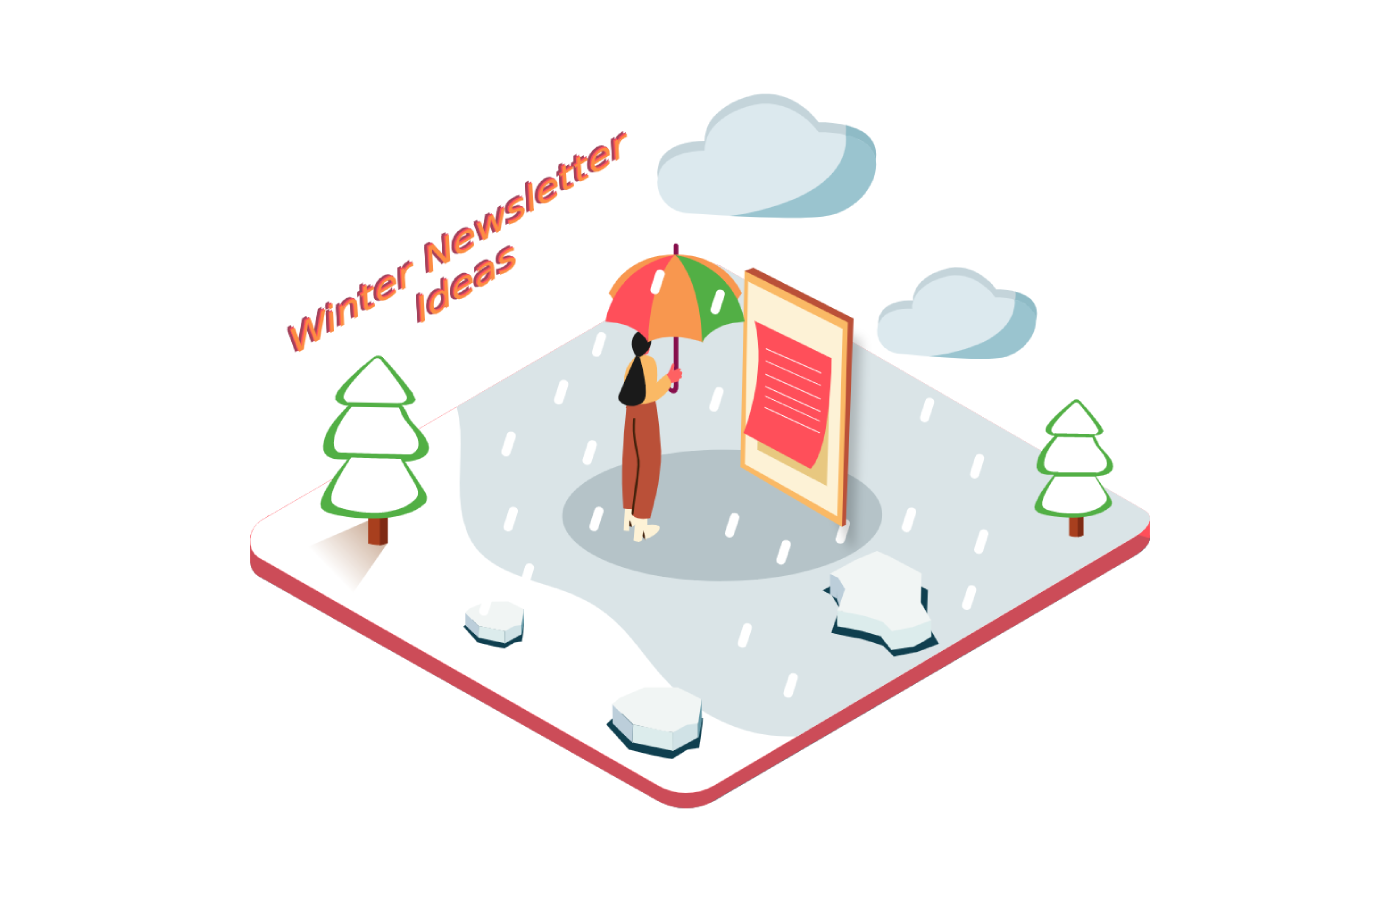 winter_newsletter_ideas-1